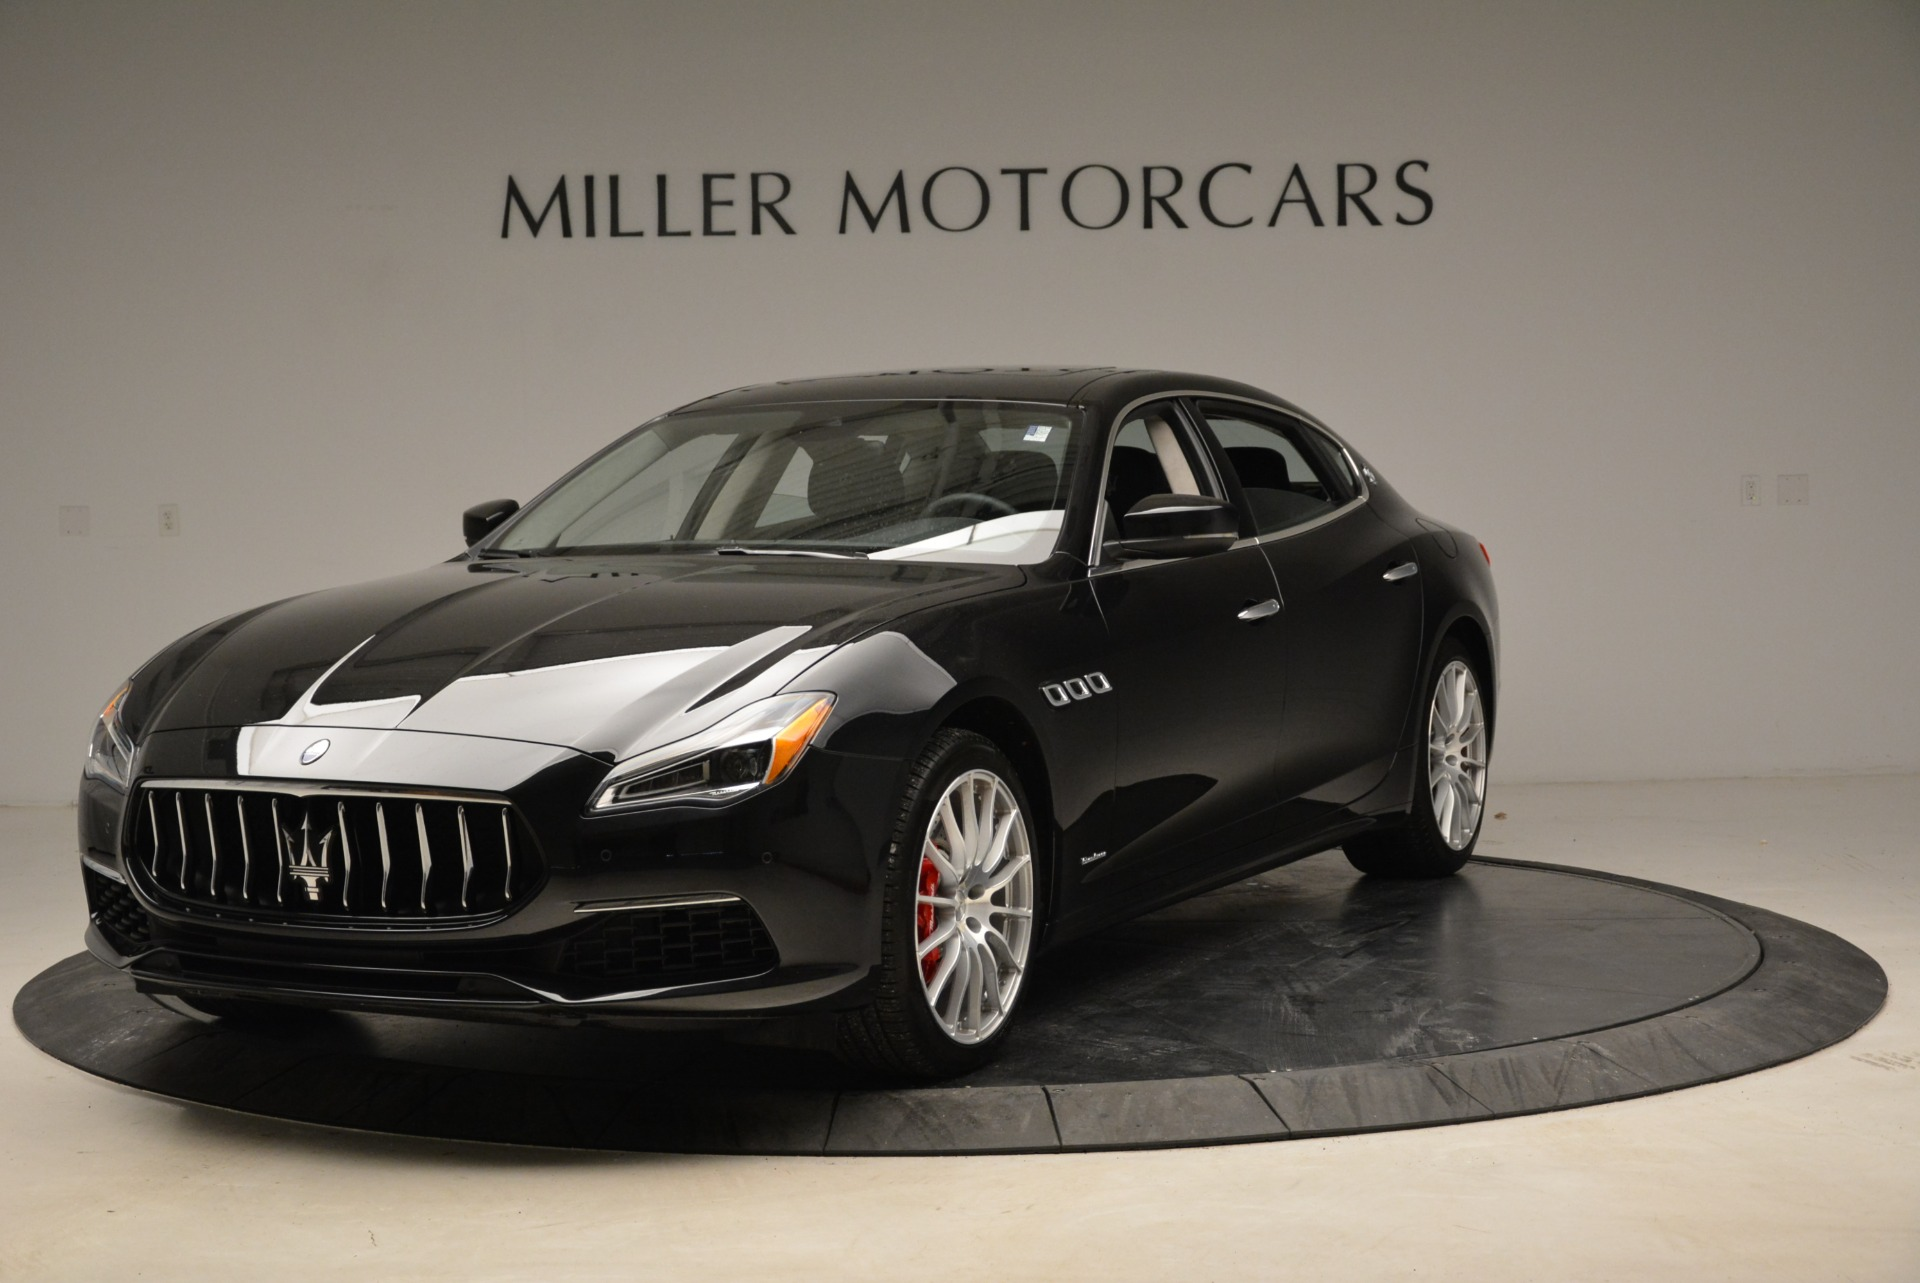 New 2018 Maserati Quattroporte S Q4 GranLusso For Sale In Greenwich, CT 1705_main